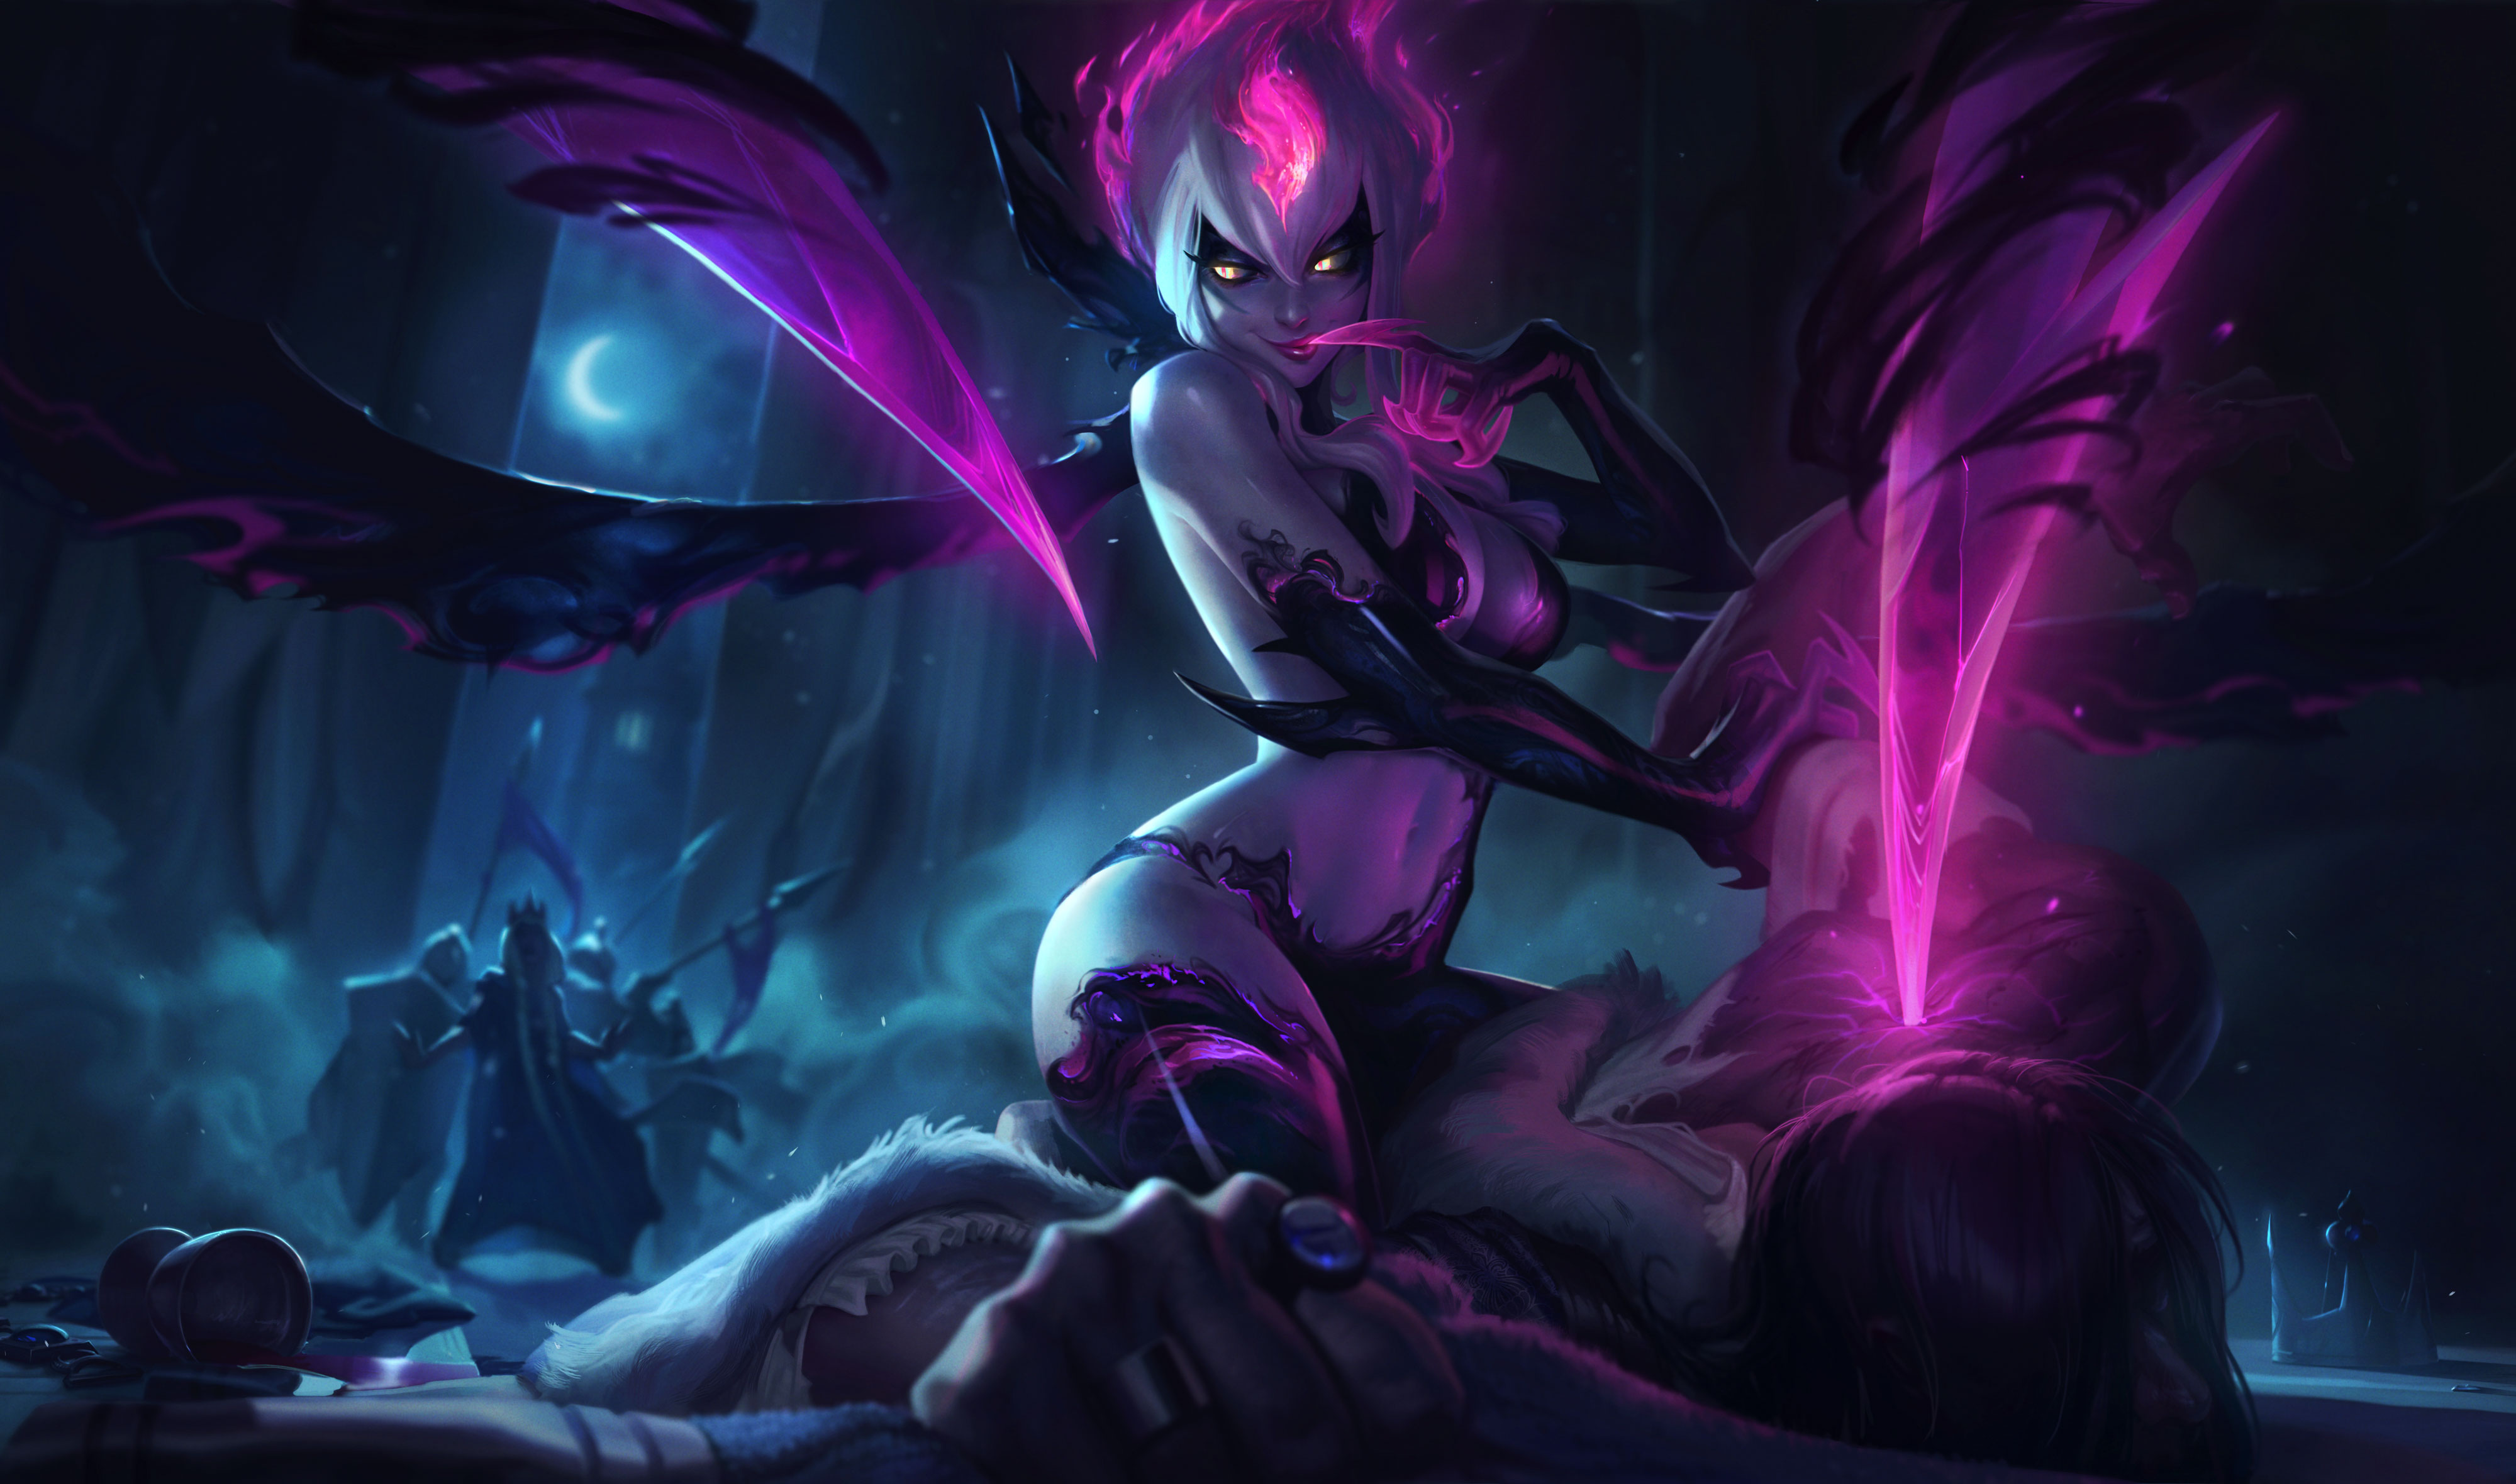 1920x1080 Evelynn League Of Legends 4k Laptop Full Hd 1080p